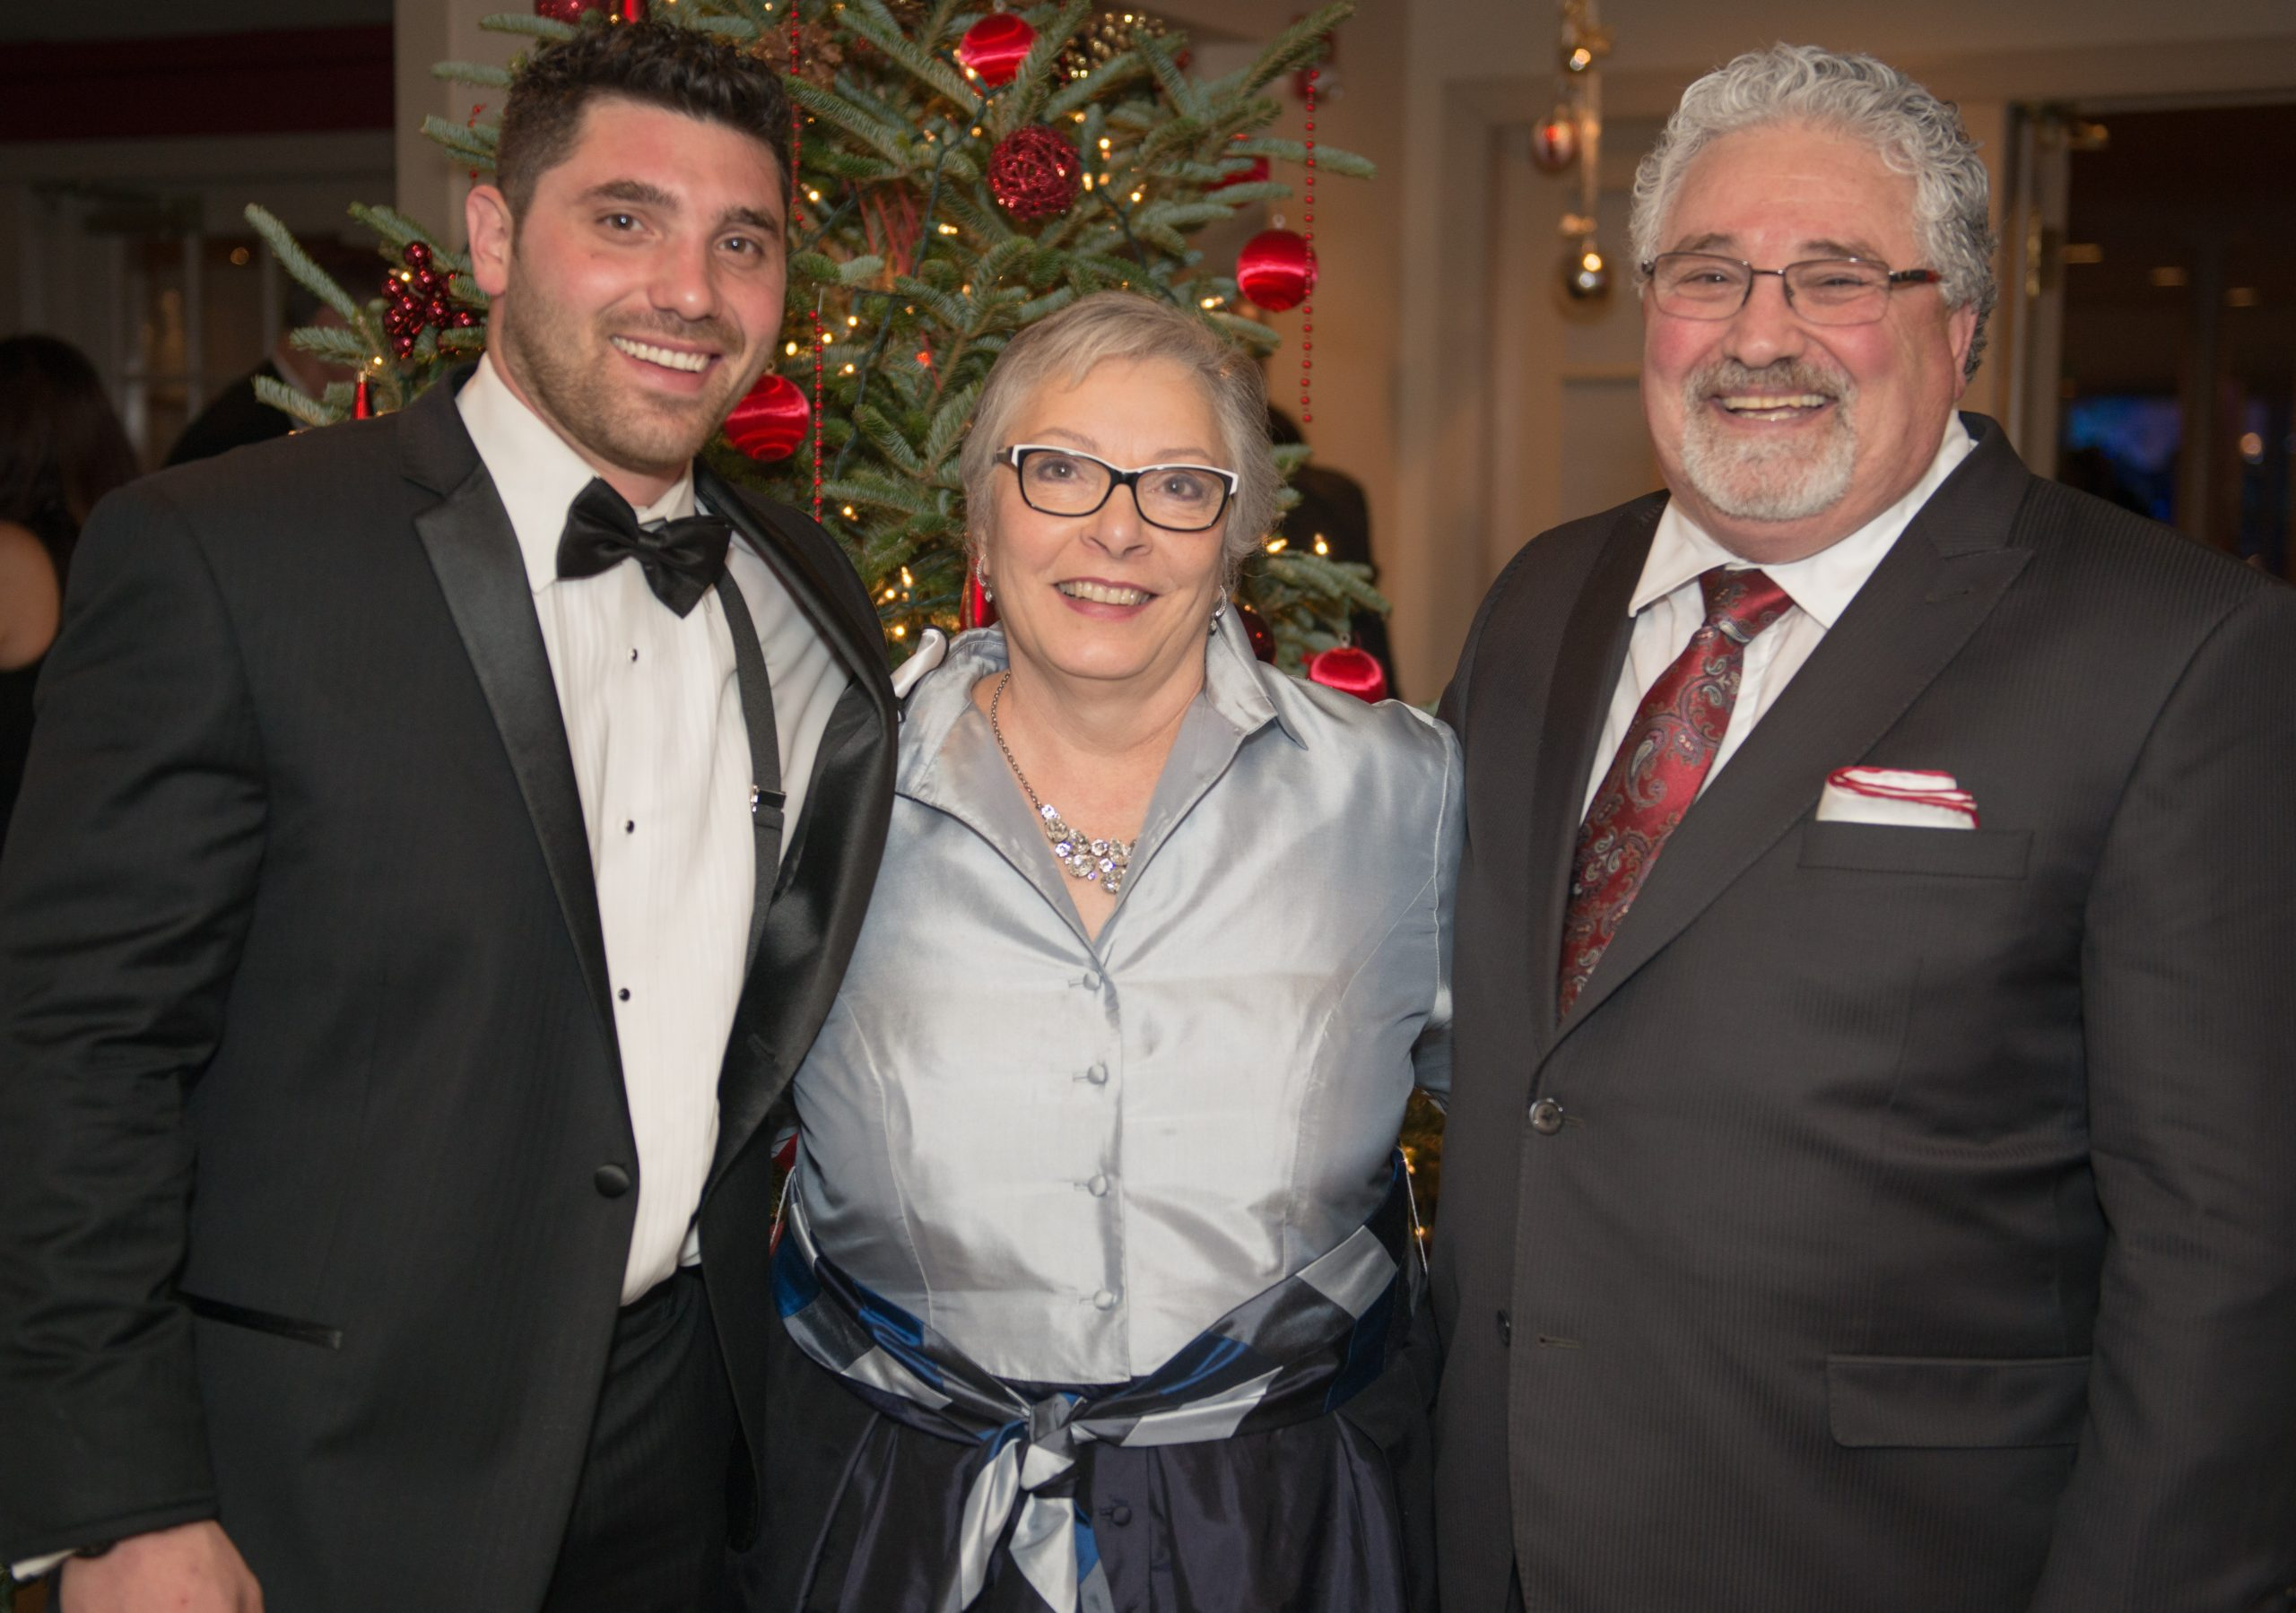 Friends Association to Host This Year's West Chester Charity Ball on Dec. 7